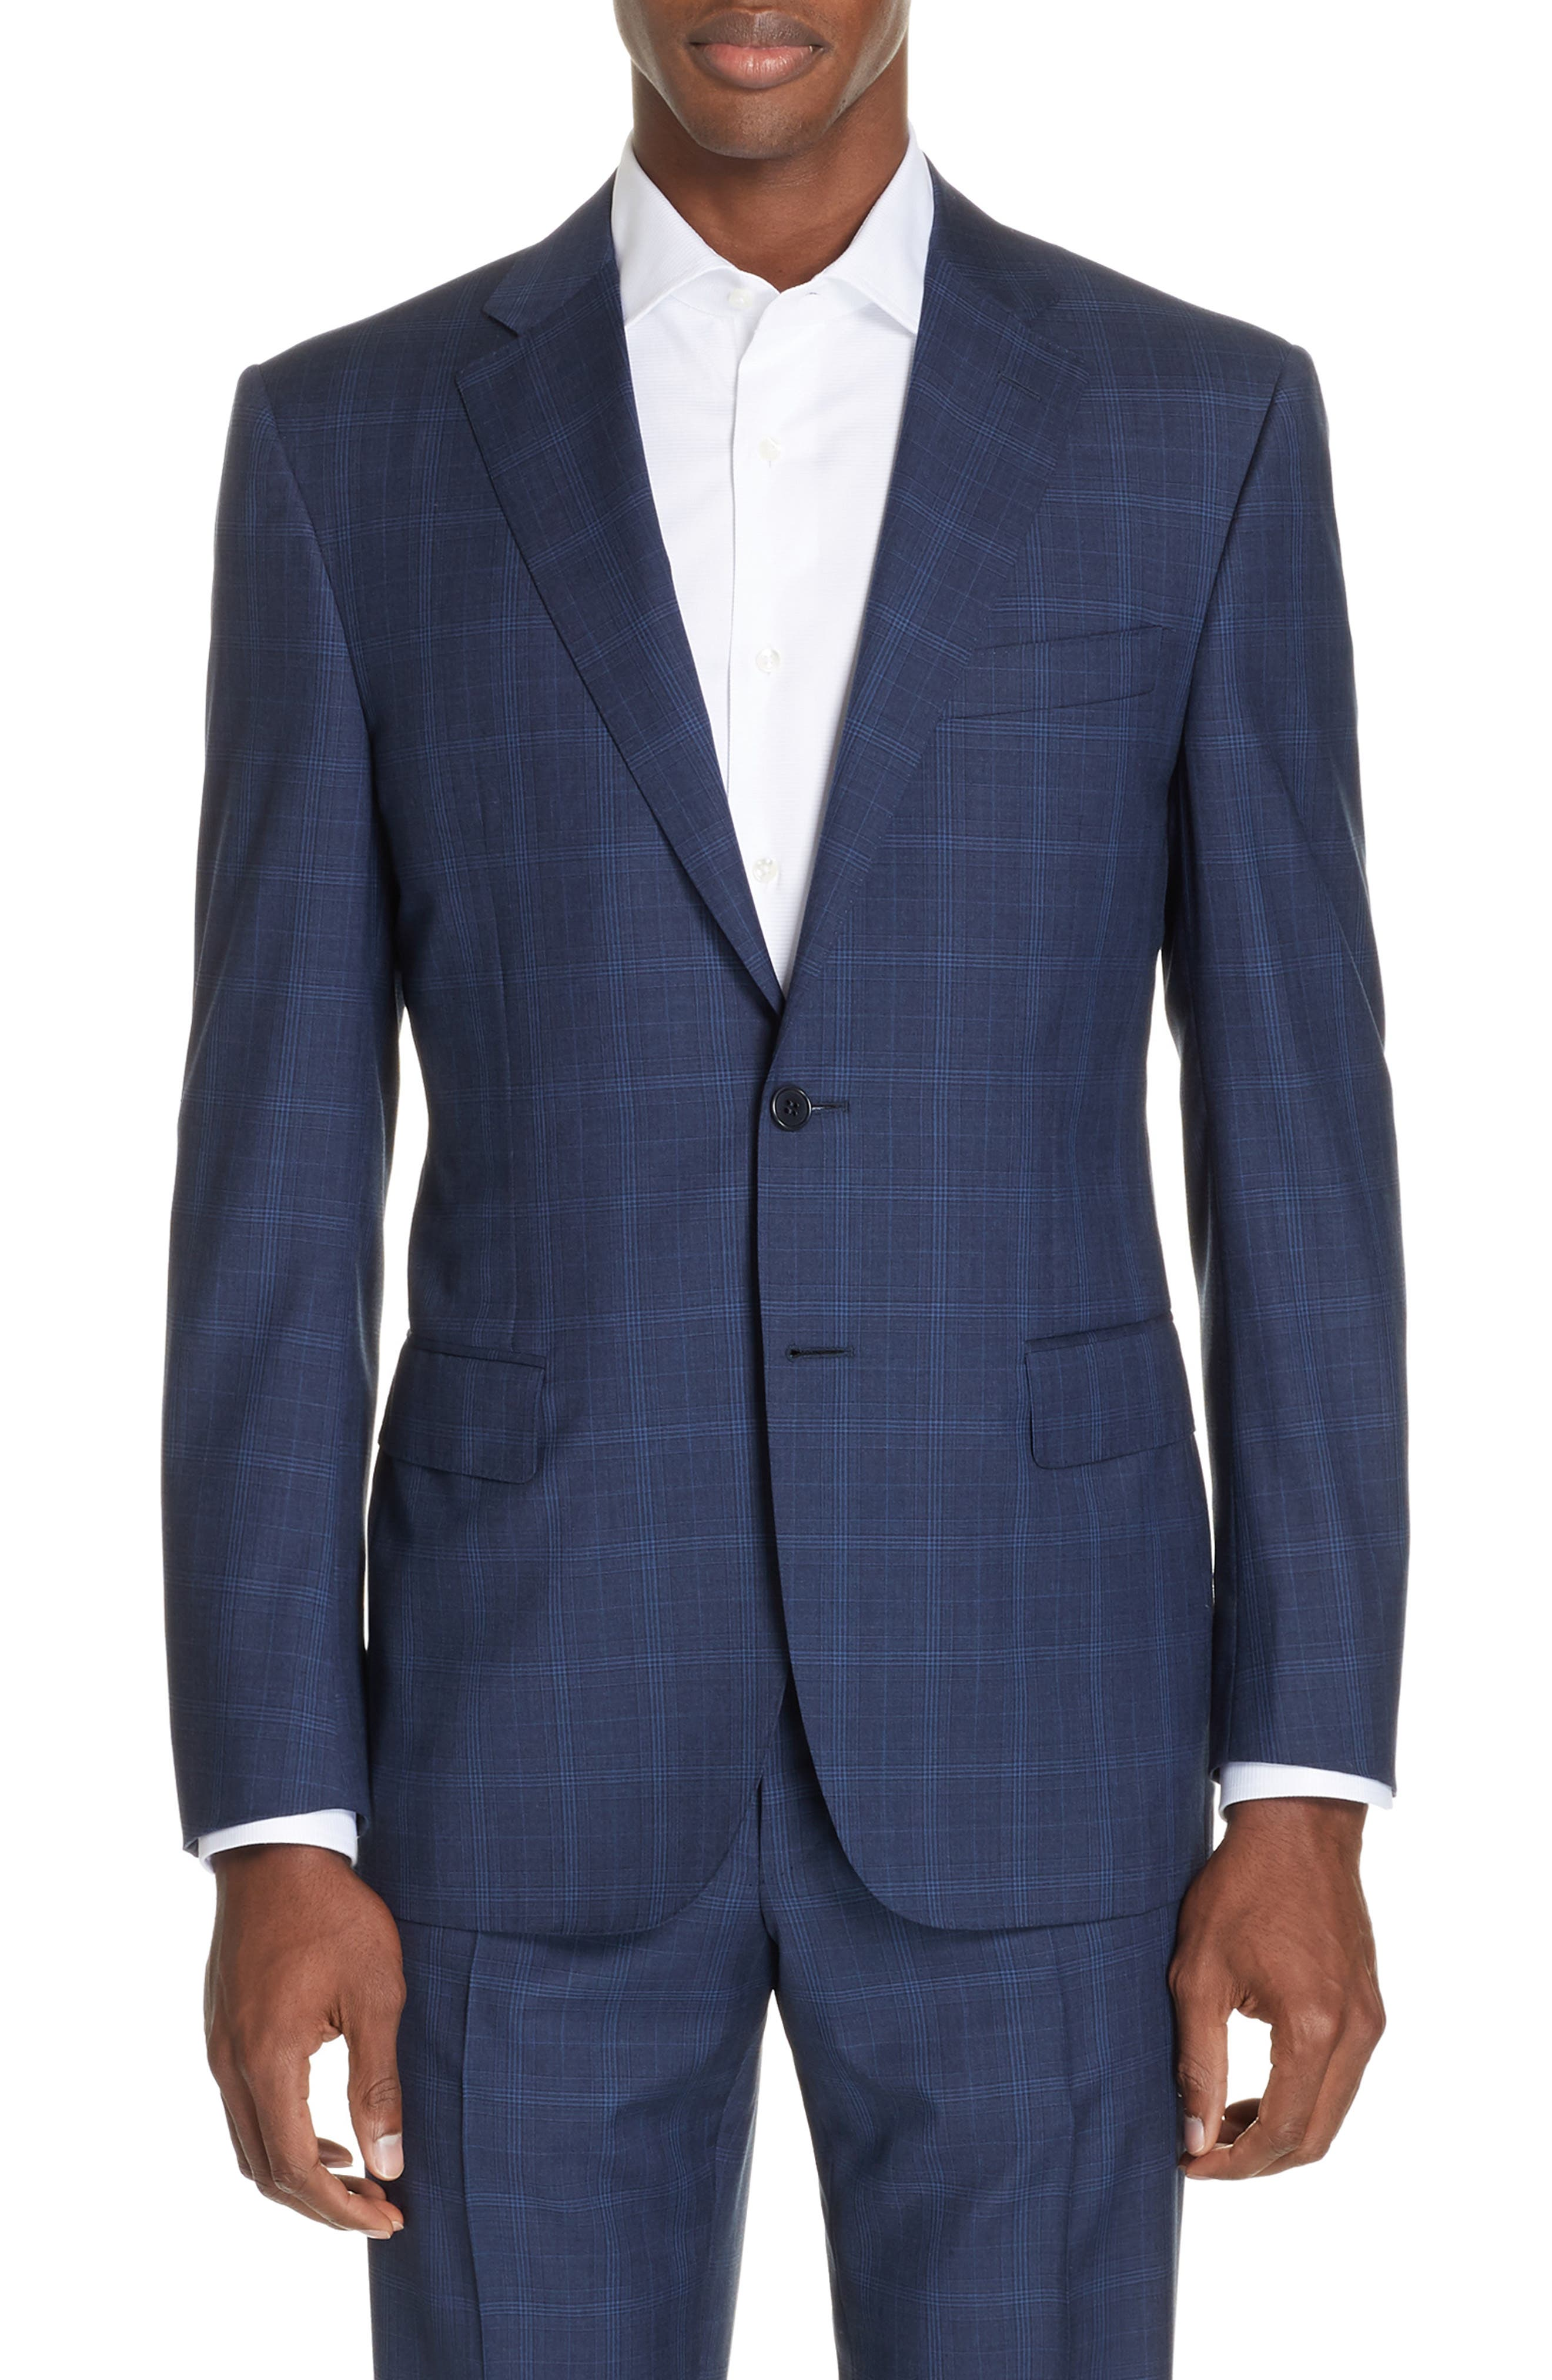 CANALI, Sienna Classic Fit Plaid Wool Suit, Alternate thumbnail 5, color, NAVY